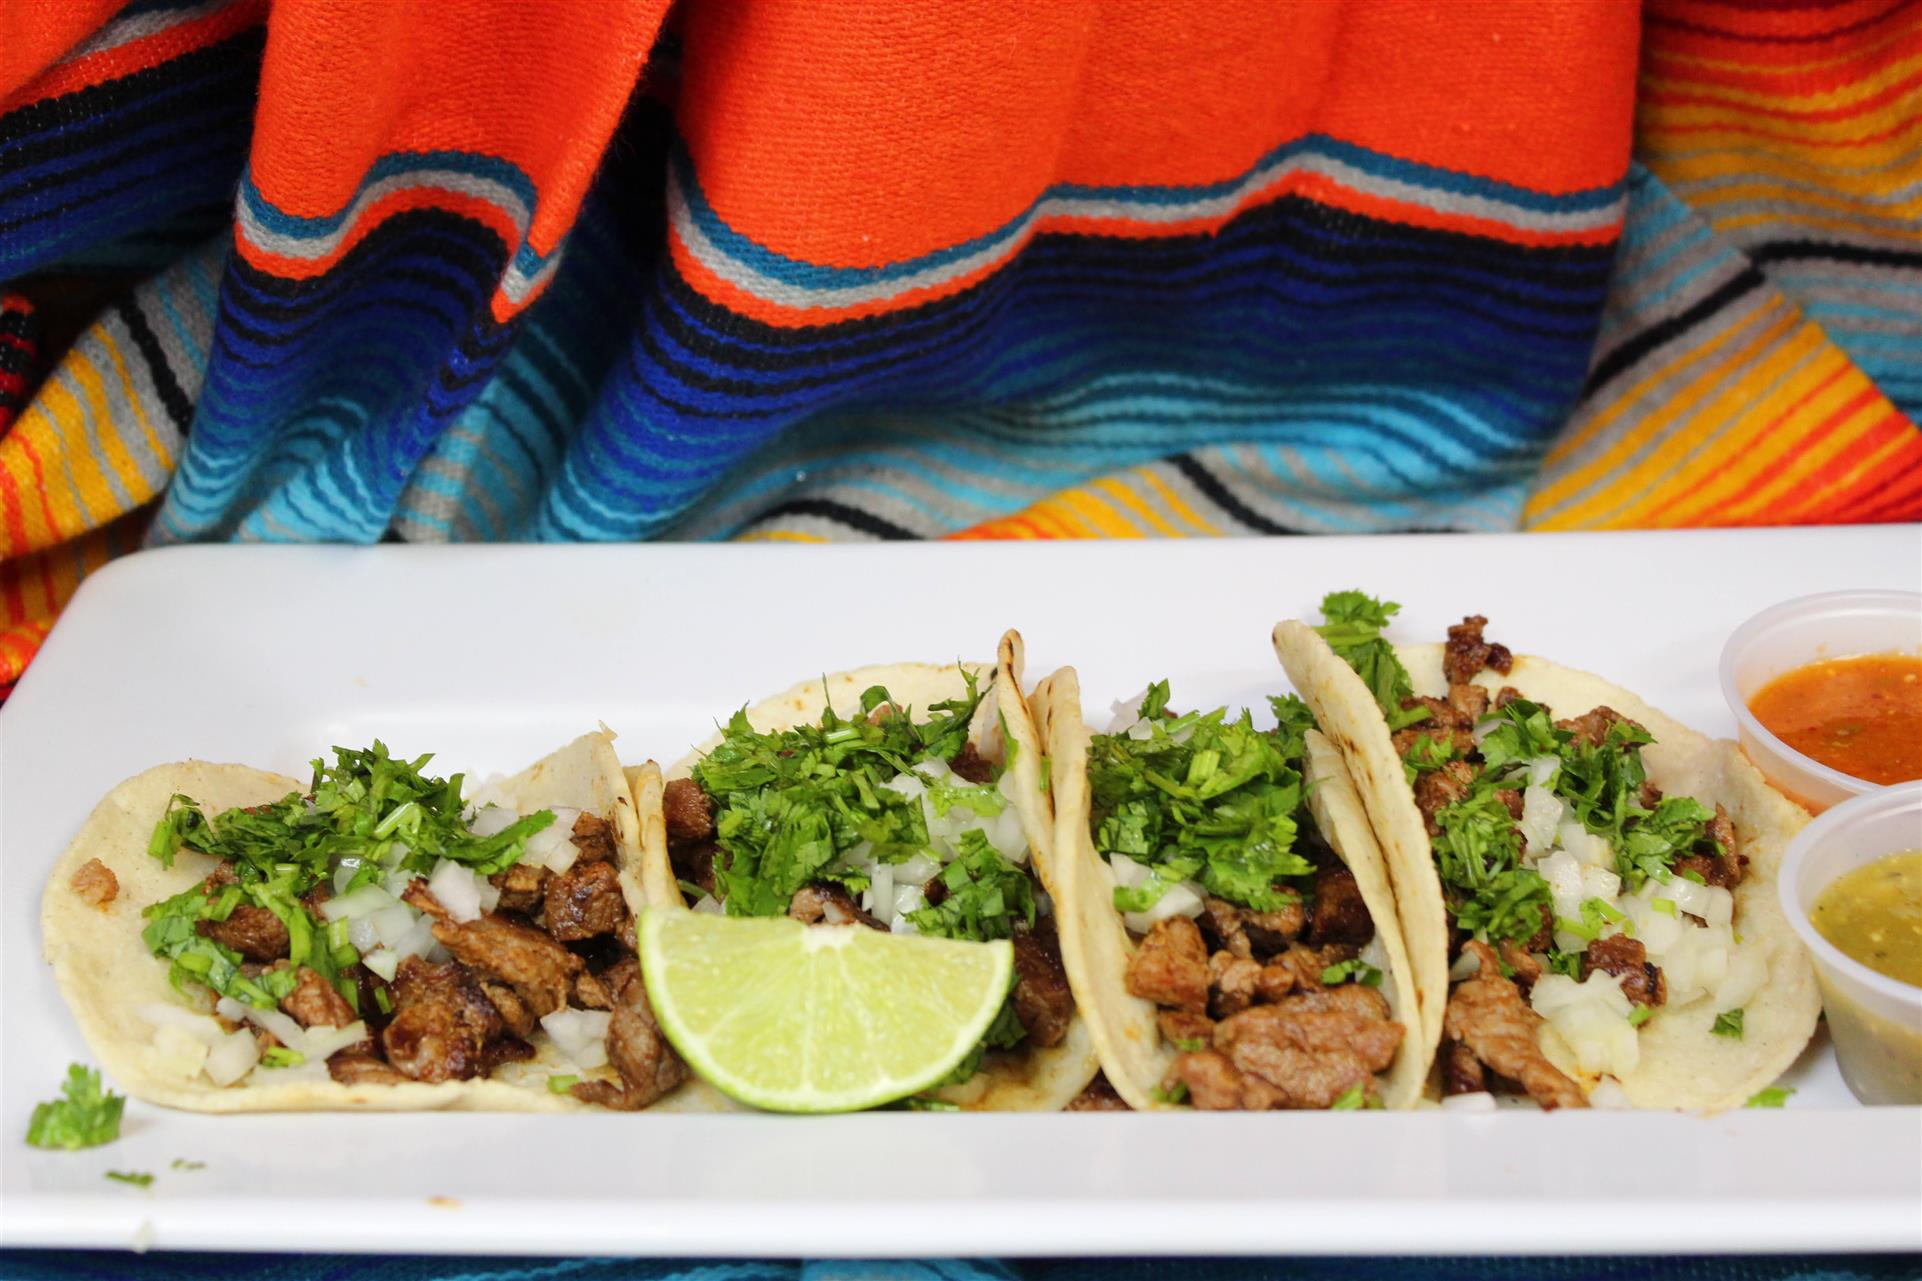 four soft shell tacos filled with chicken, onions, and cilantro with a lime wedge